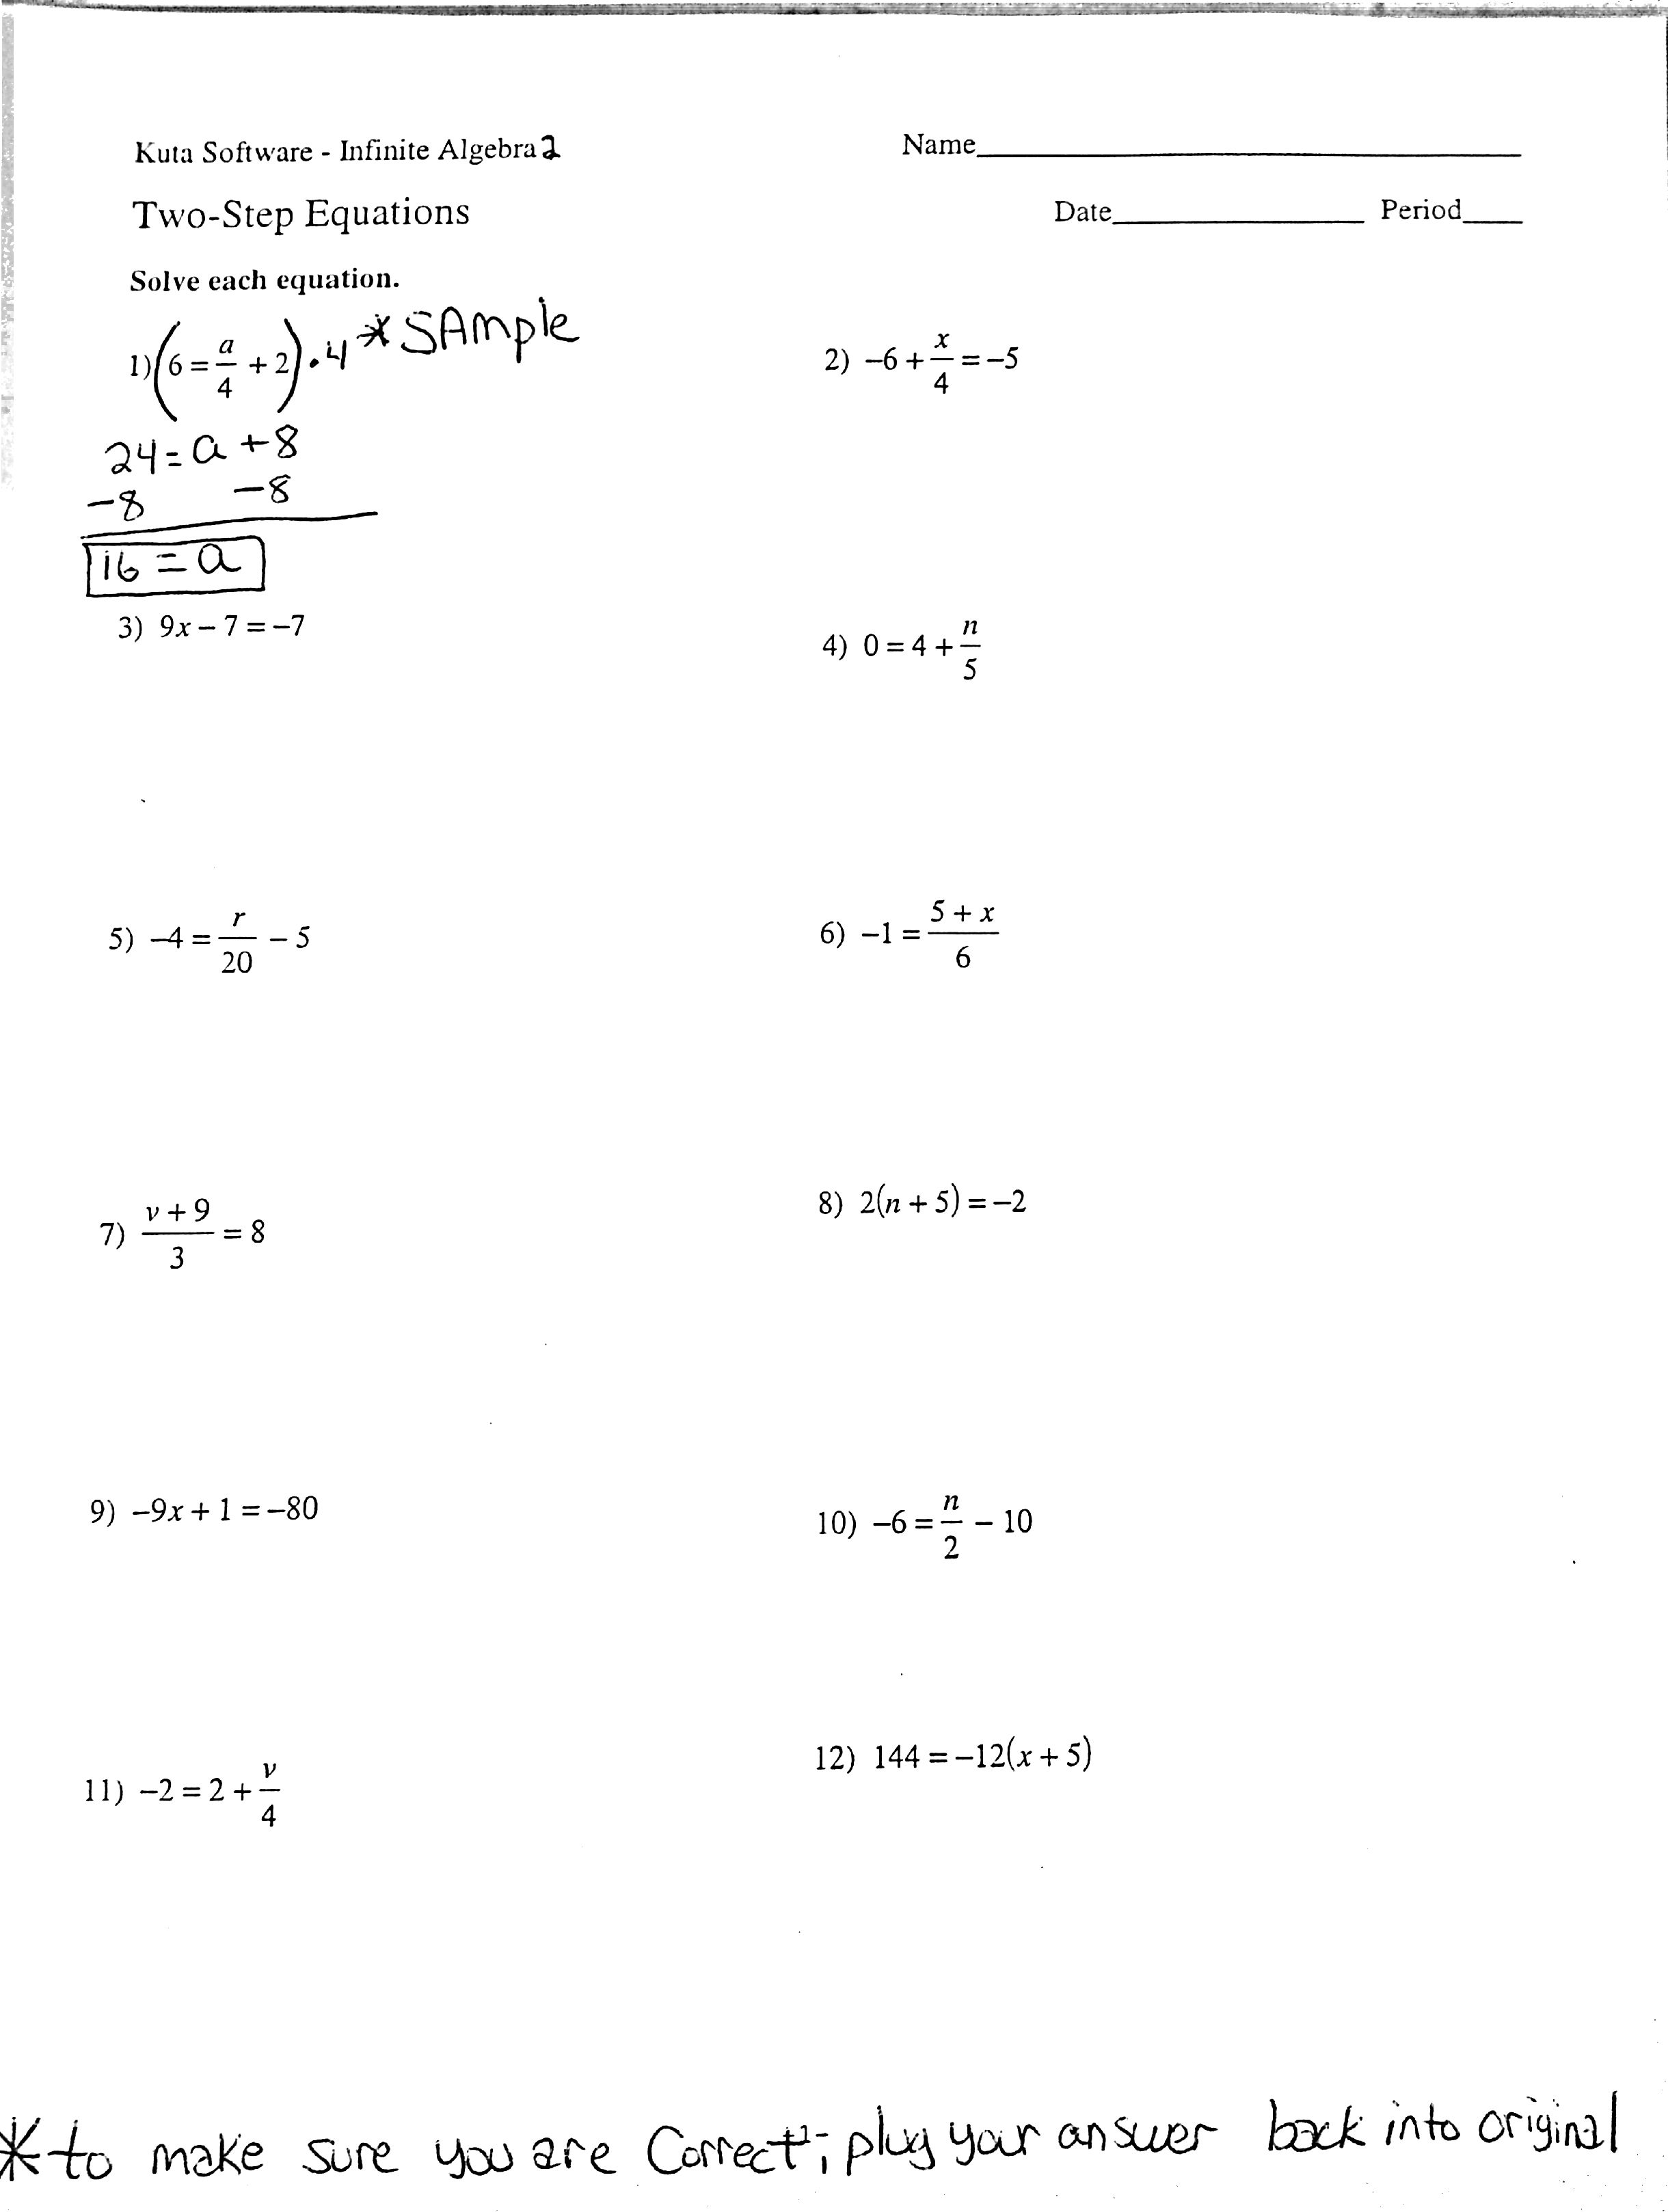 Worksheets Solving Multi Step Equations Worksheet Answers printables 2 step algebra equations worksheets tempojs thousands one worksheet answers abtd answers